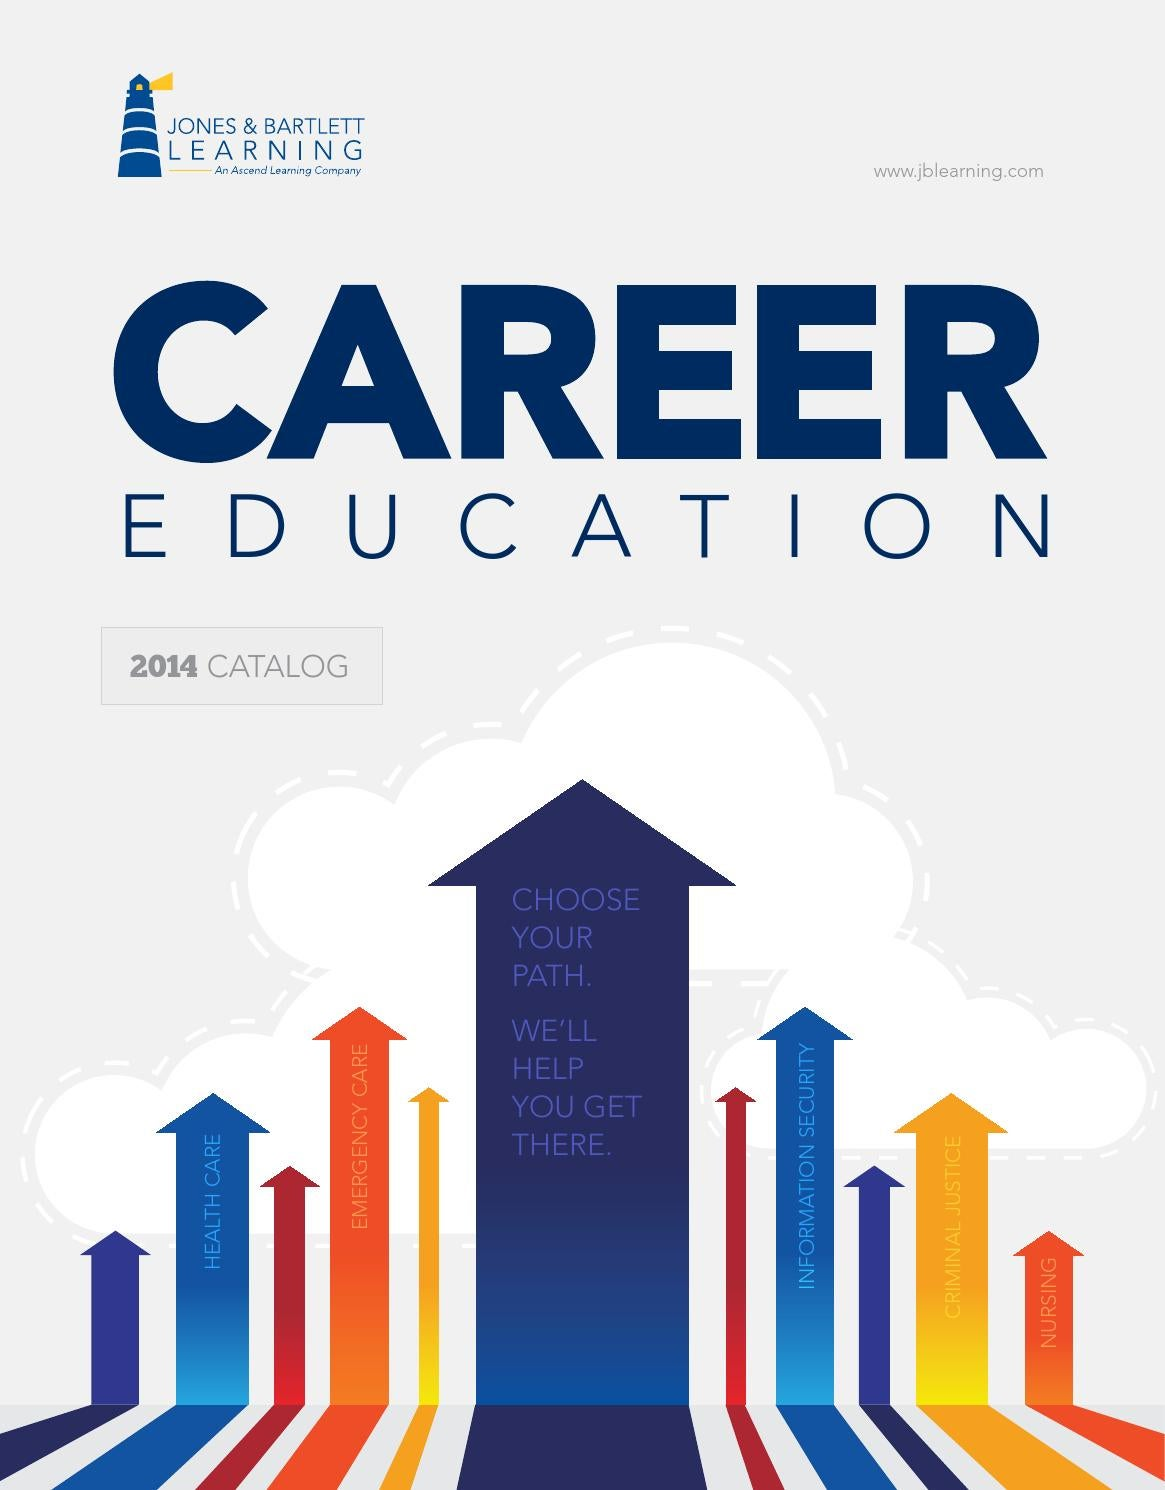 Jones bartlett learning 2014 career education catalog by jones jones bartlett learning 2014 career education catalog by jones bartlett learning issuu fandeluxe